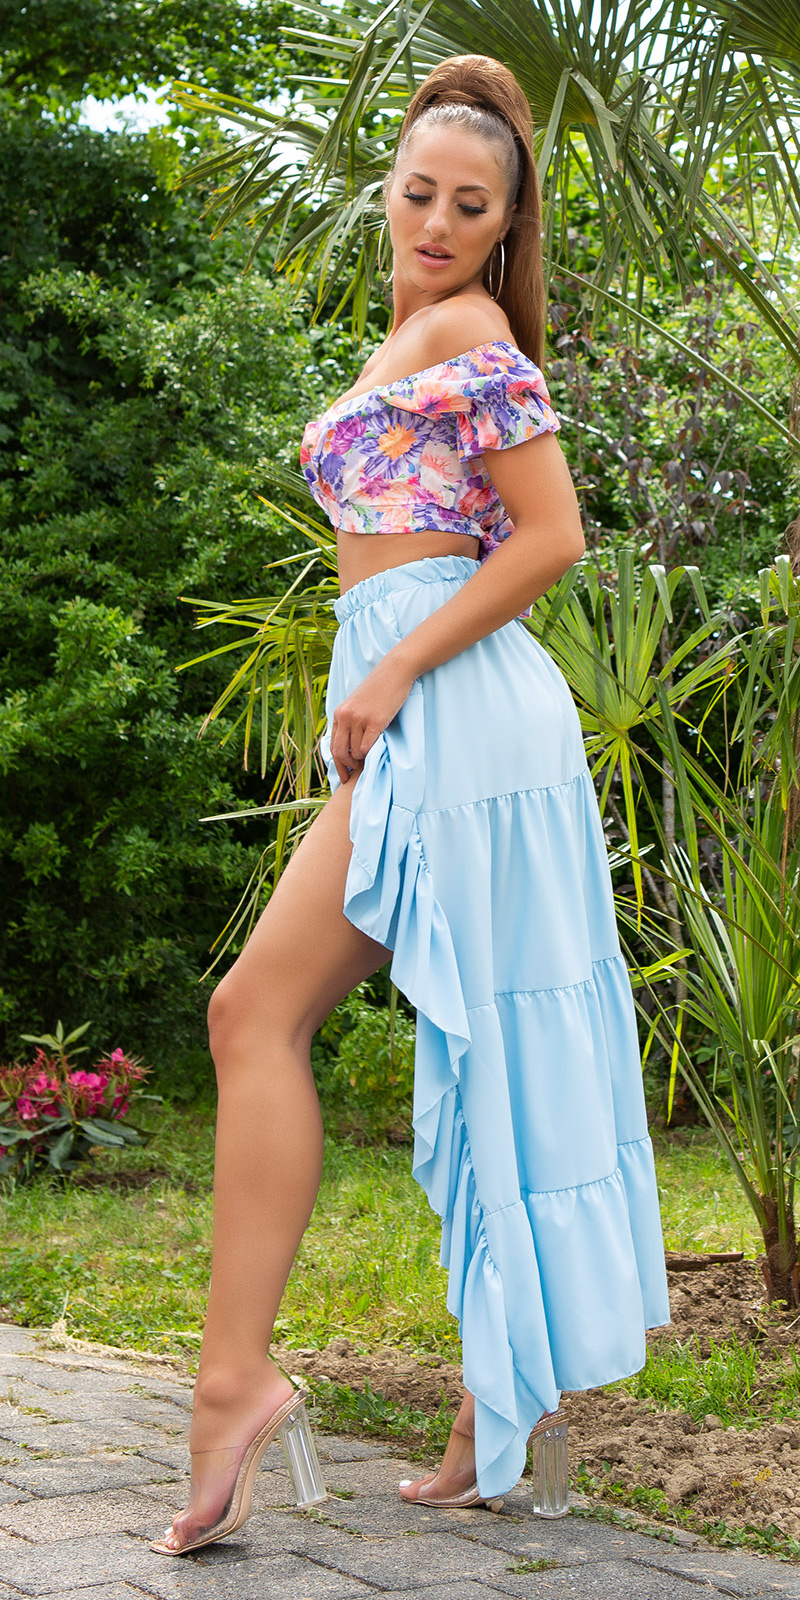 Sexy Latina High-Low Skirt Turquoise